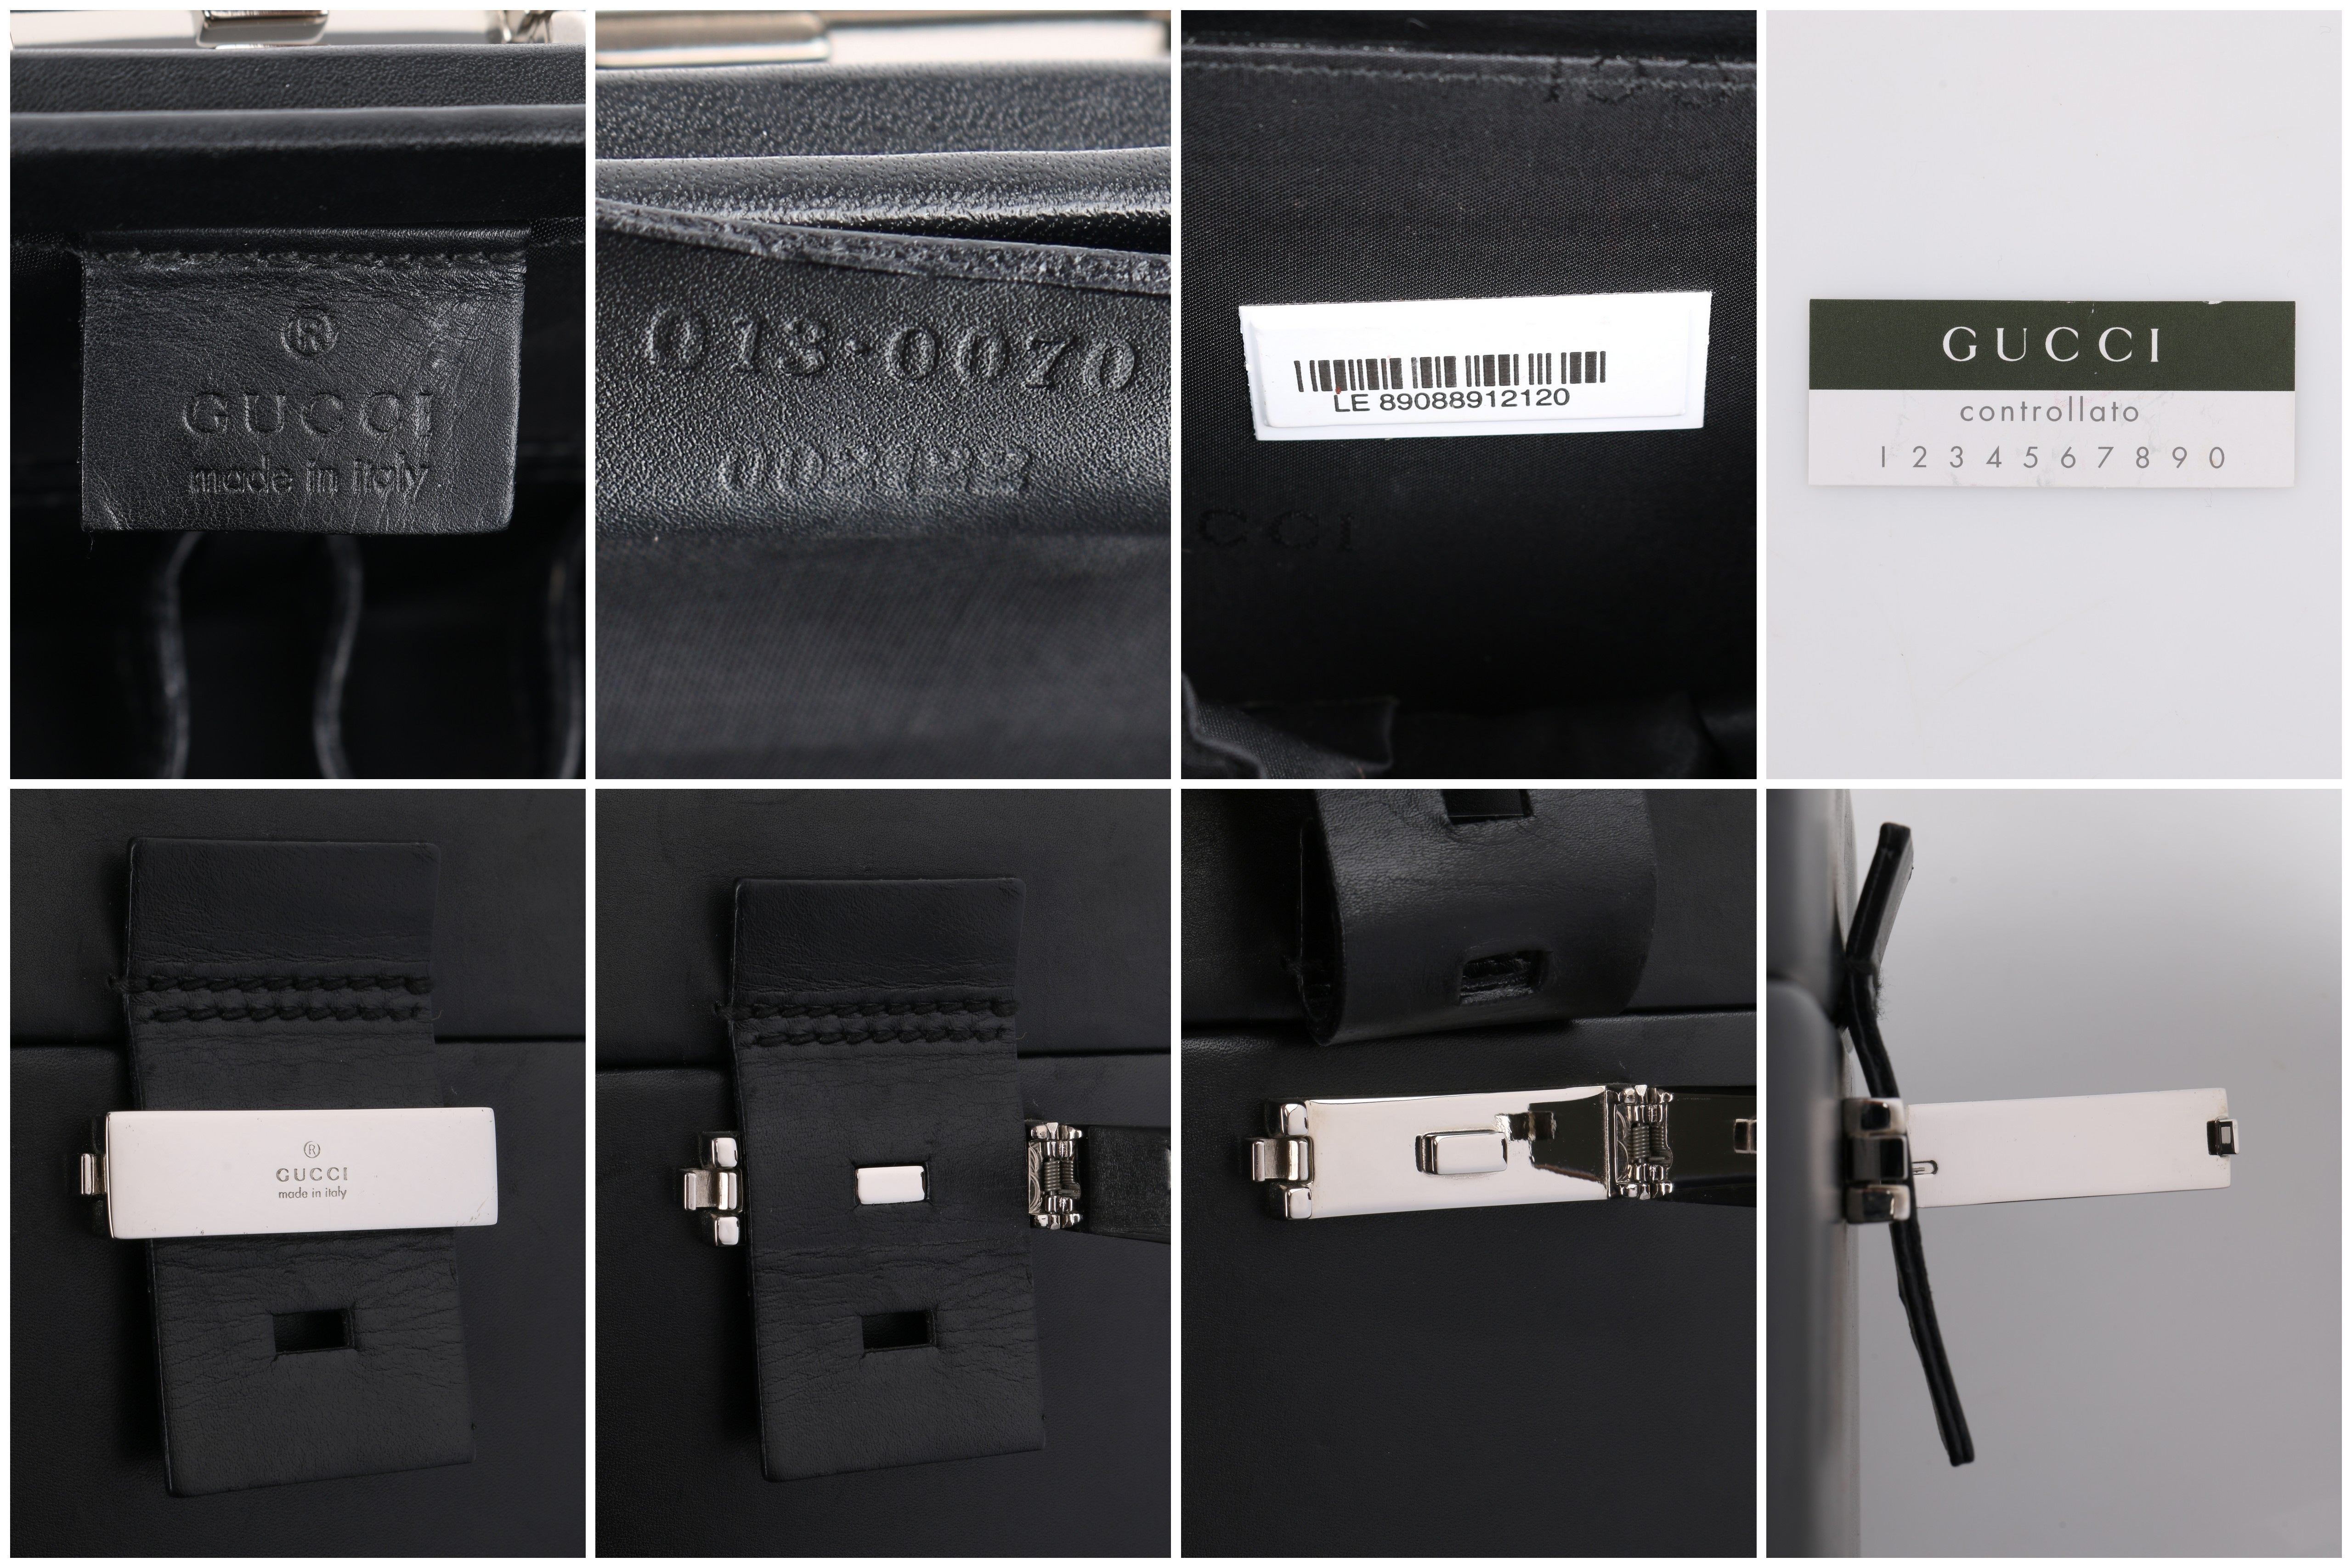 6bdcdc4d6db9 GUCCI Black Genuine Leather Structured Train Case Cosmetic Travel Bag Box  Purse For Sale at 1stdibs